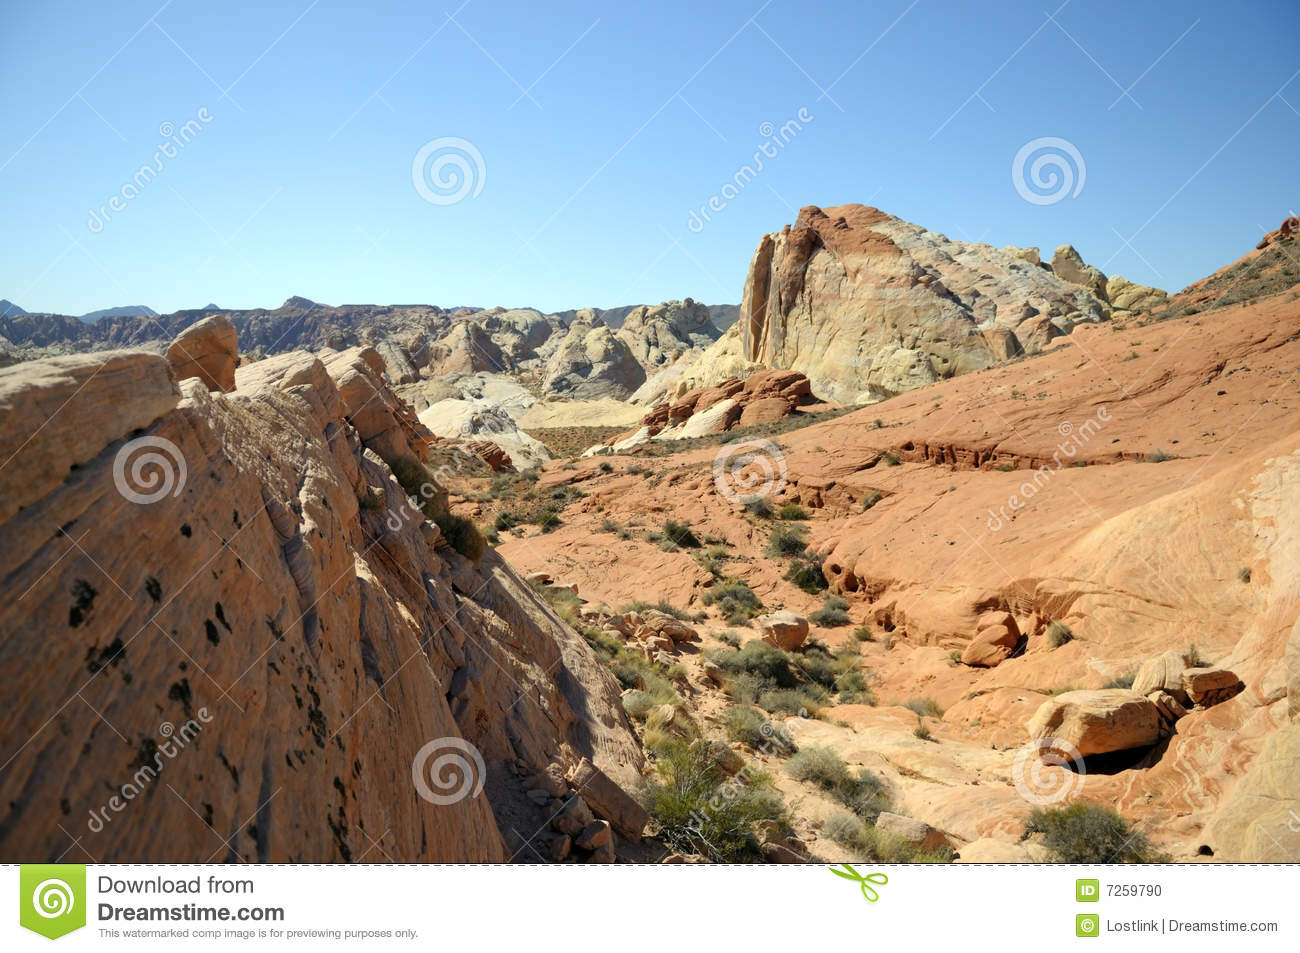 valley of fire park map with Stock Photo Beautiful Red Rock Formations Image7259790 on Katherine Jacobs also Valleyprofiles also Valley Of Fire Tour Destination as well Montana in addition Details.